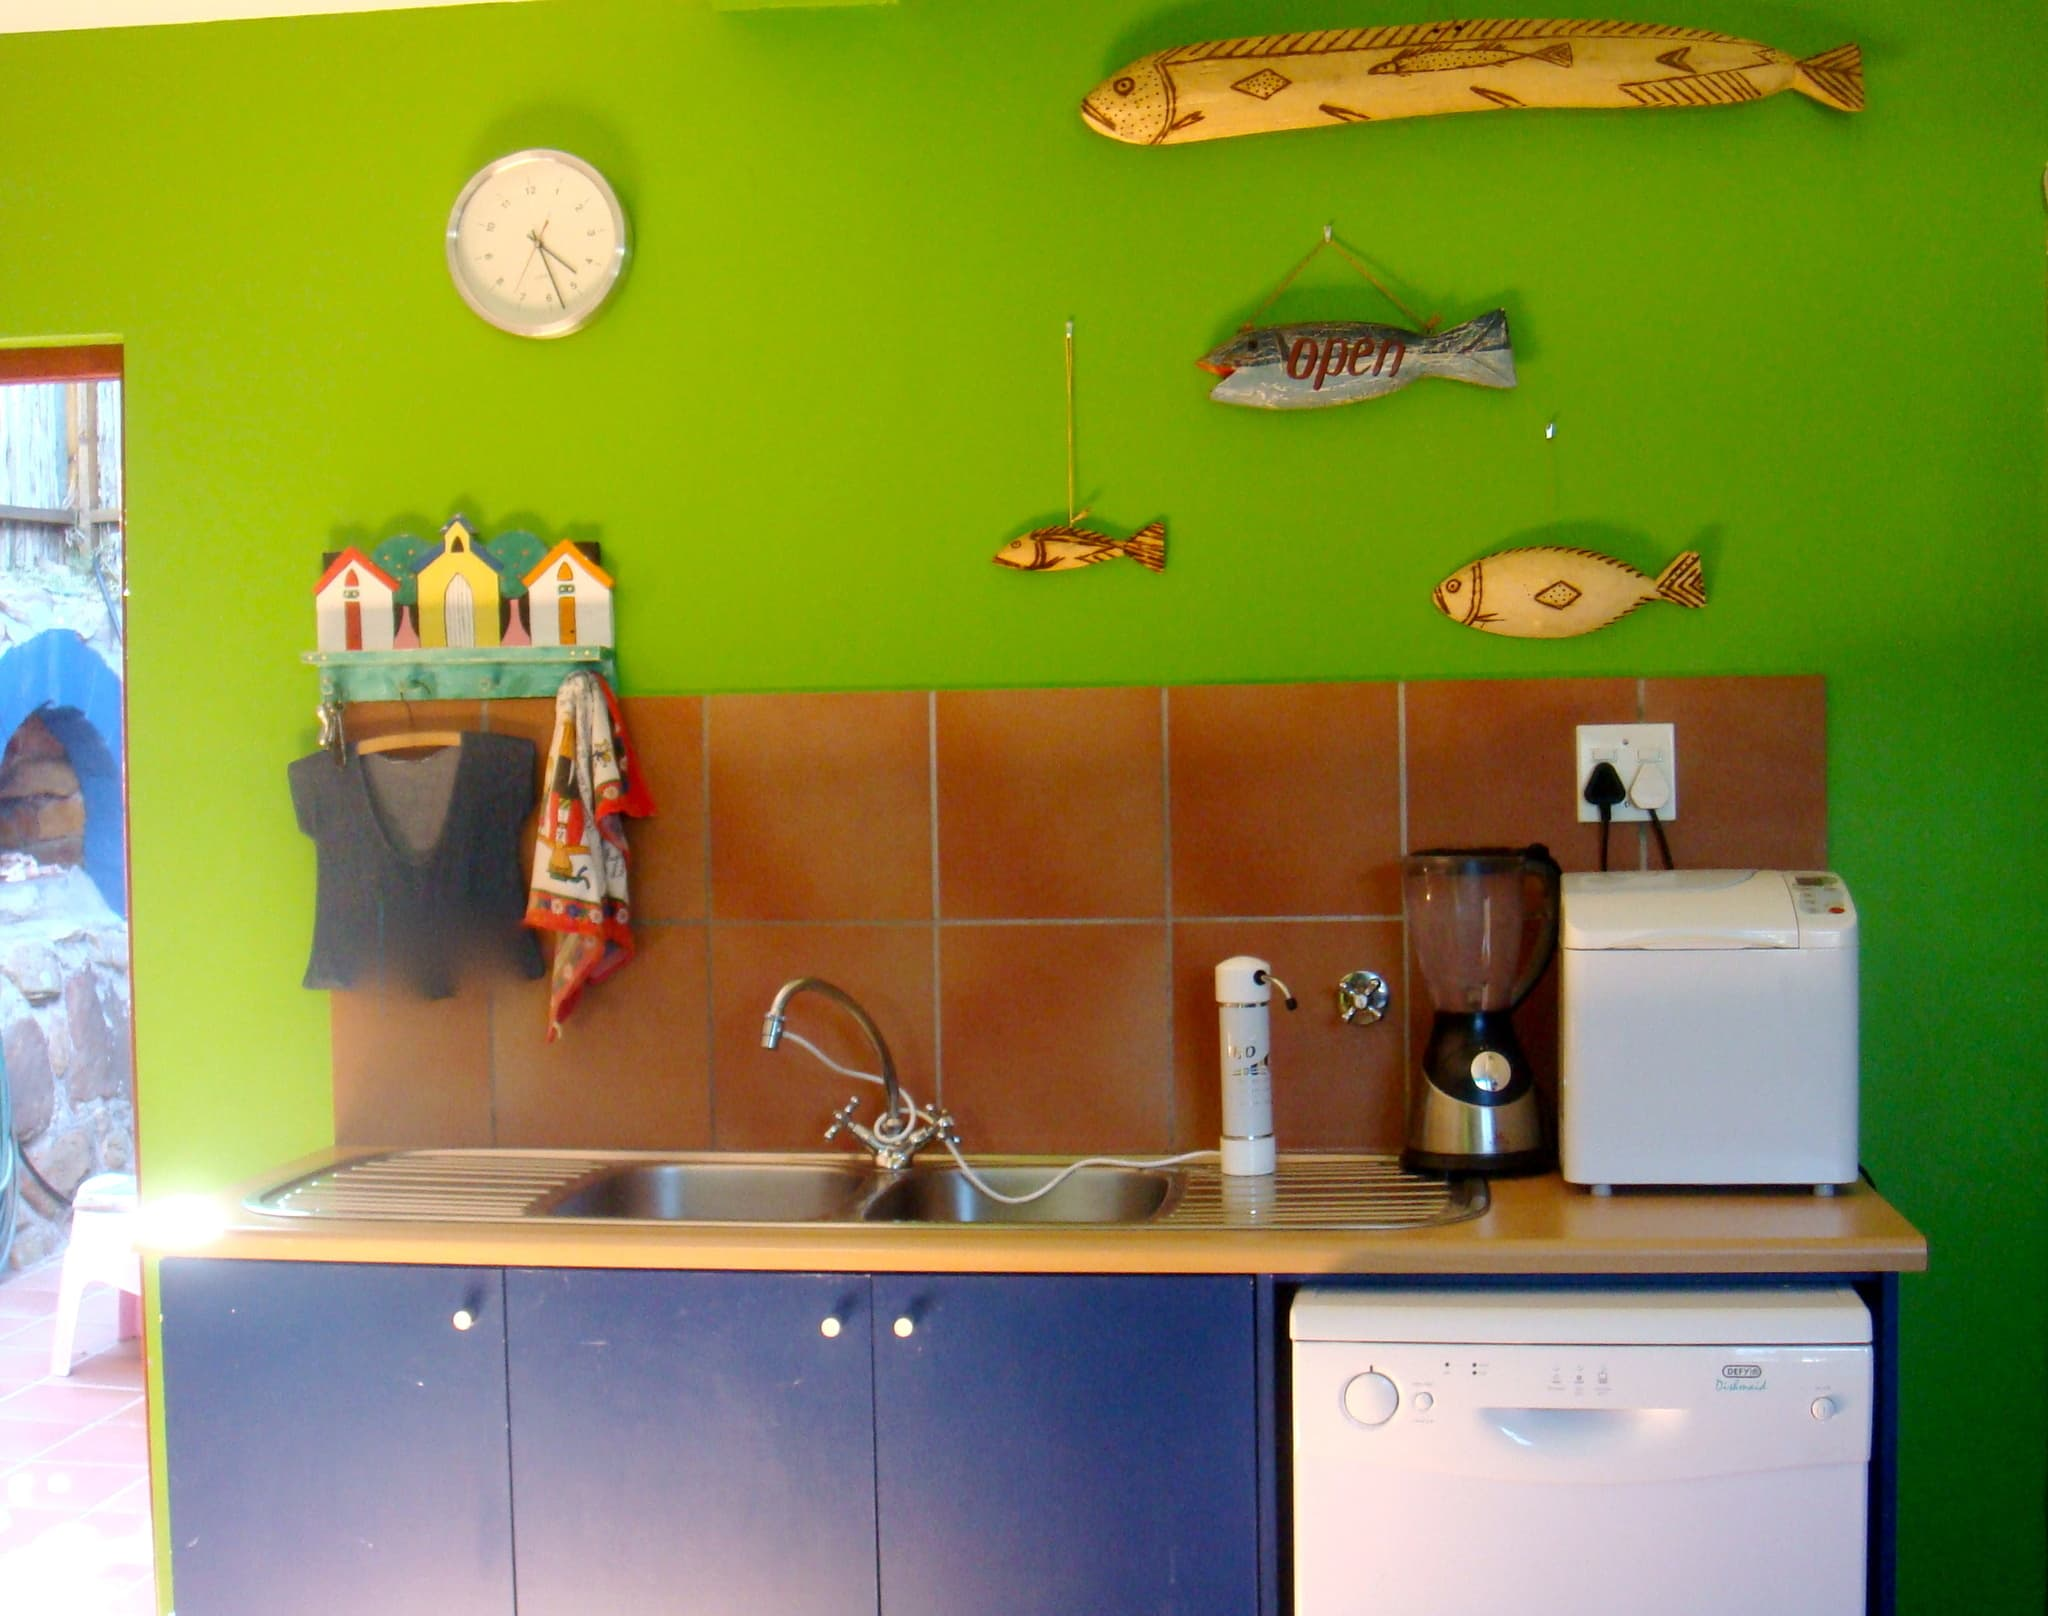 Blue, Green, and Sunny: A South African Family Kitchen: gallery image 3